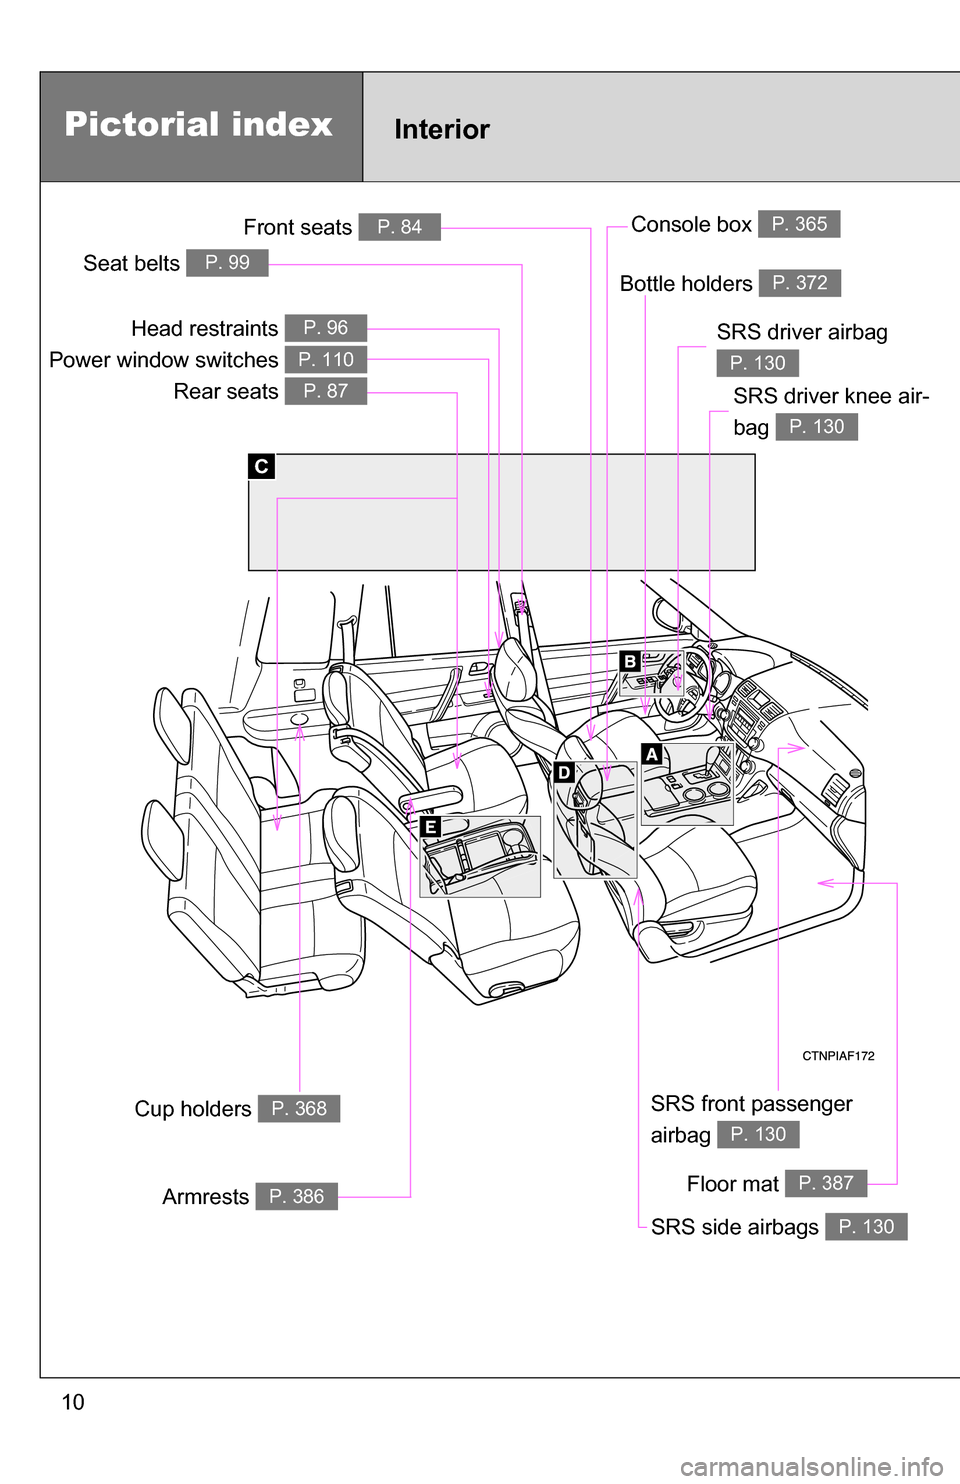 Toyota Highlander Hybrid 2008 Xu40 2g Owners Manual Headlamp Assembly Parts Diagram Page 10